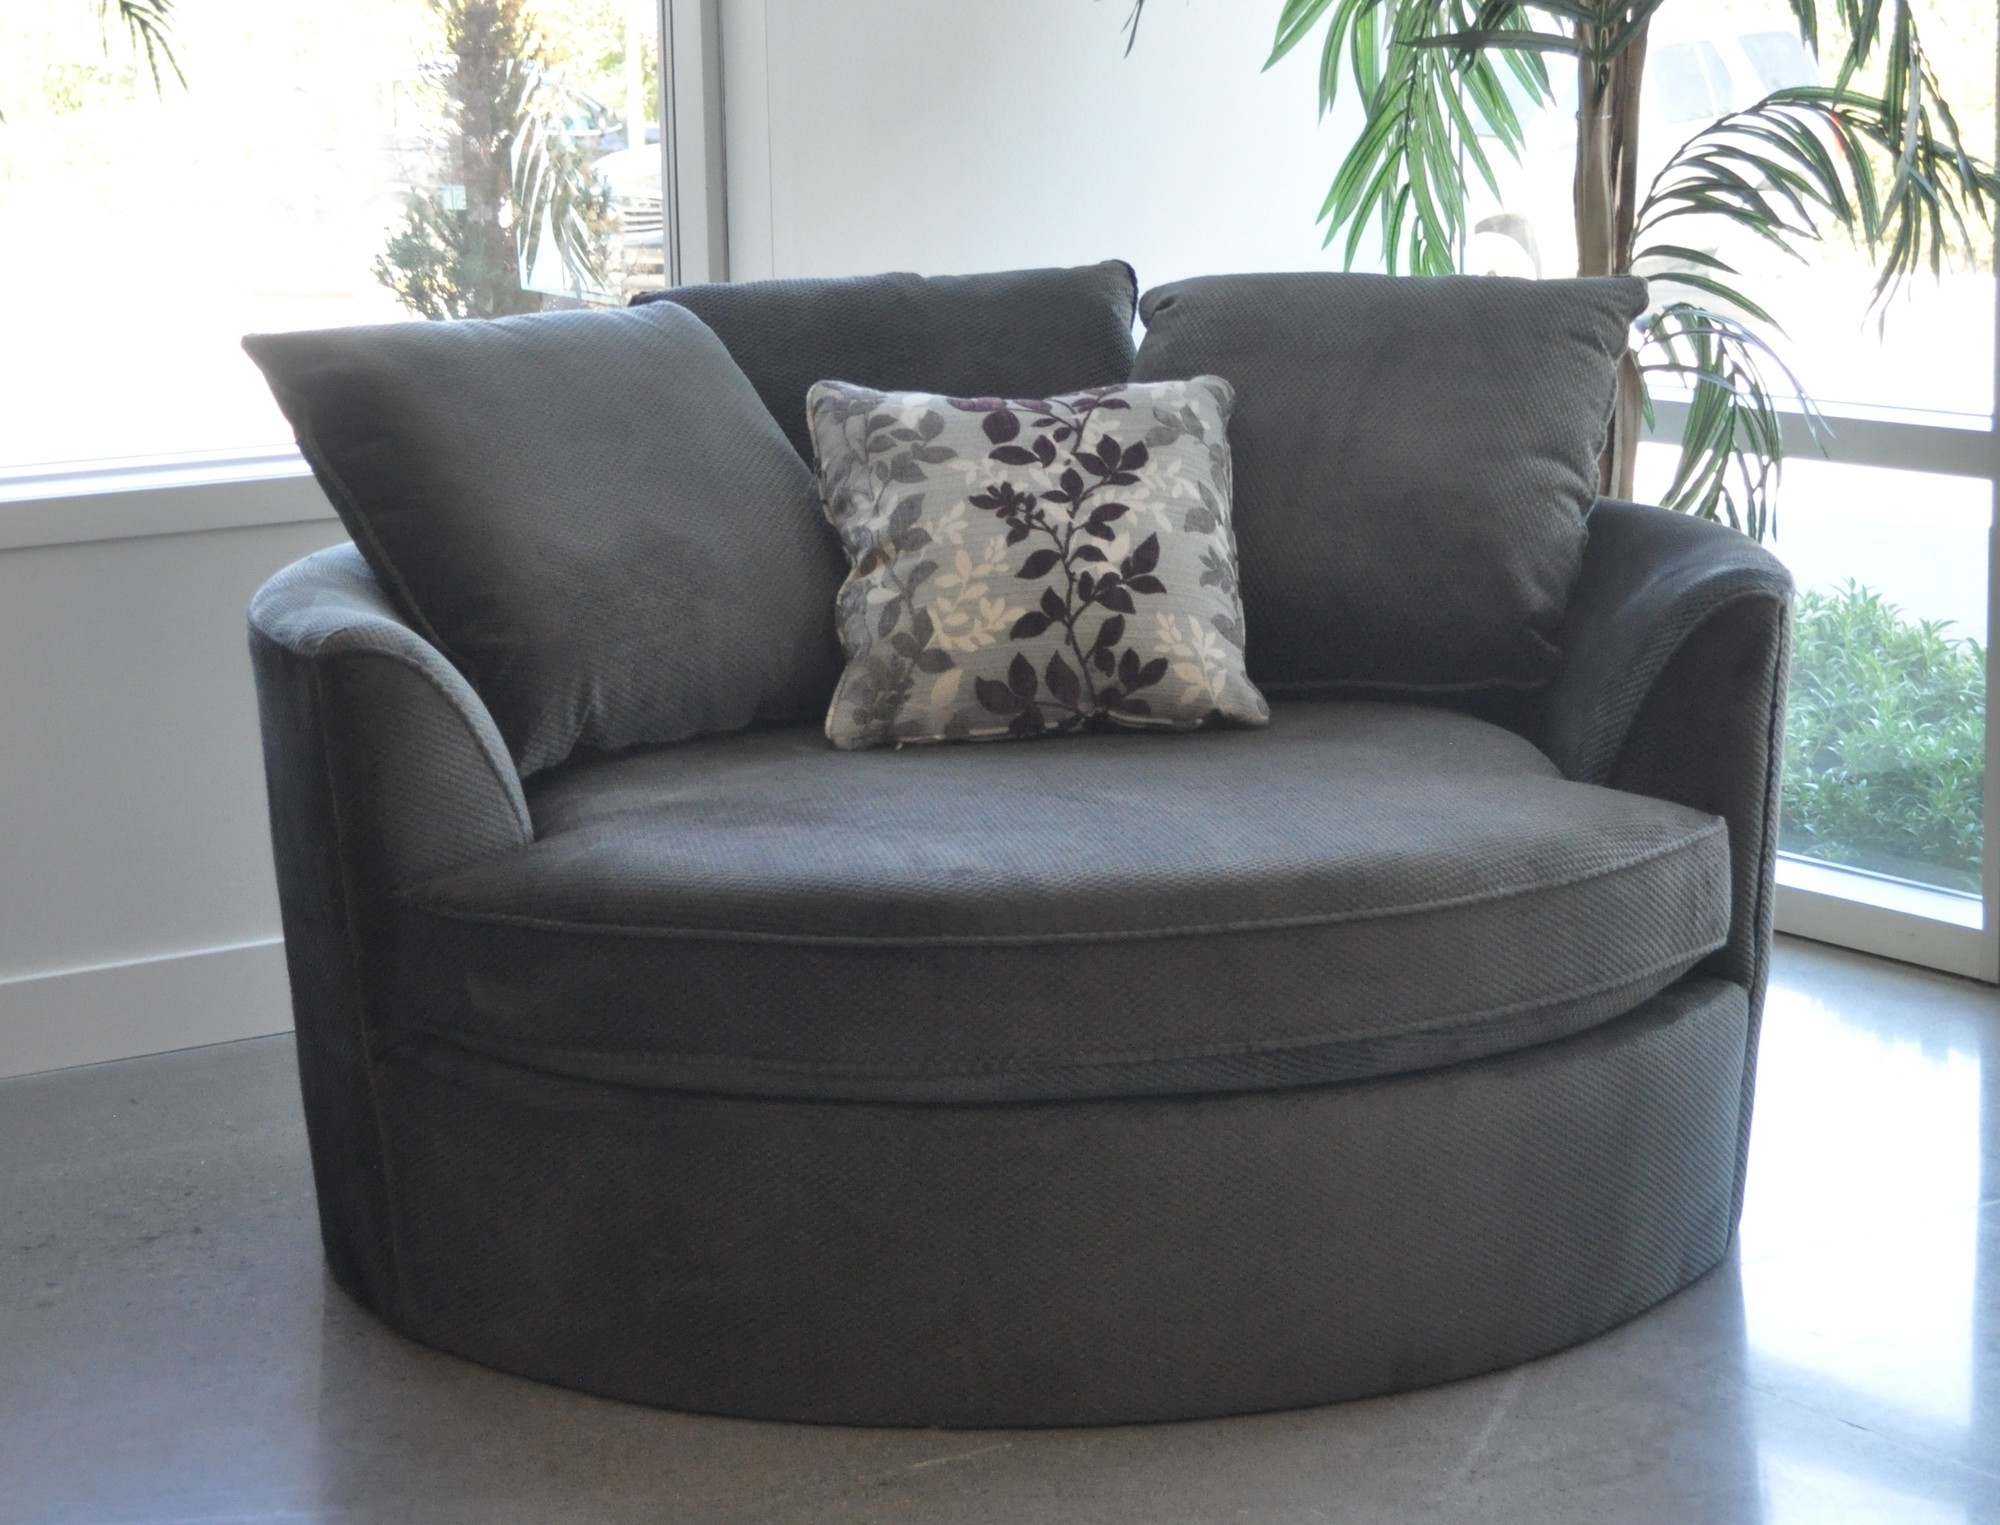 Trendy Sofa : Round Single Sofa Chair Buy Round Sofa Chair Round Sofa With Regard To Round Sofas (View 15 of 15)